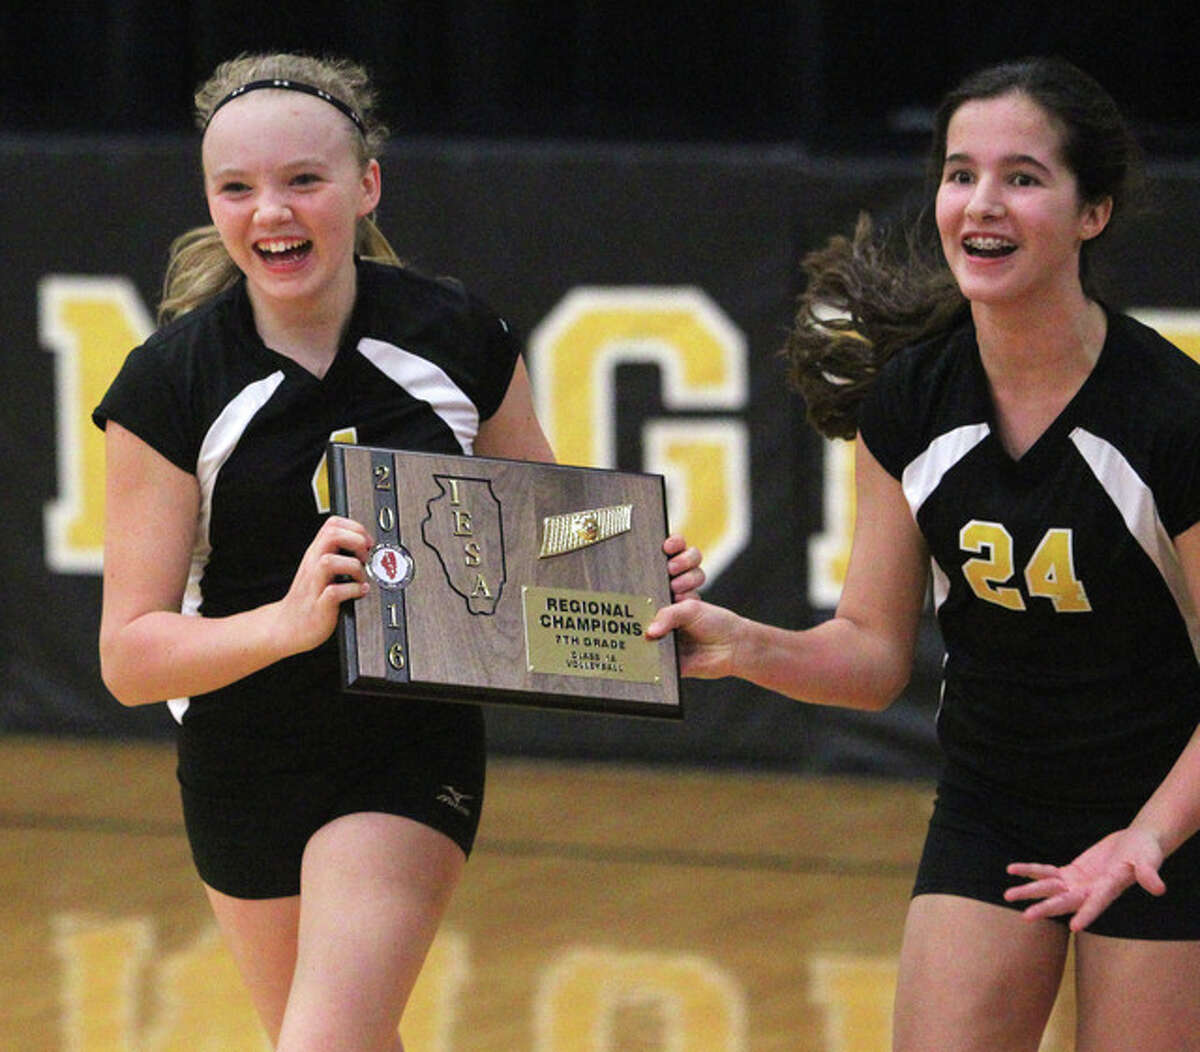 A-C Central volleyball players Addyson McClure (left) and Bailey Wallbaum run back to their teammates after accepting the A-C Central Regional championship plaque. The Lady Knights seventh-graders beat Virginia for the regional title.